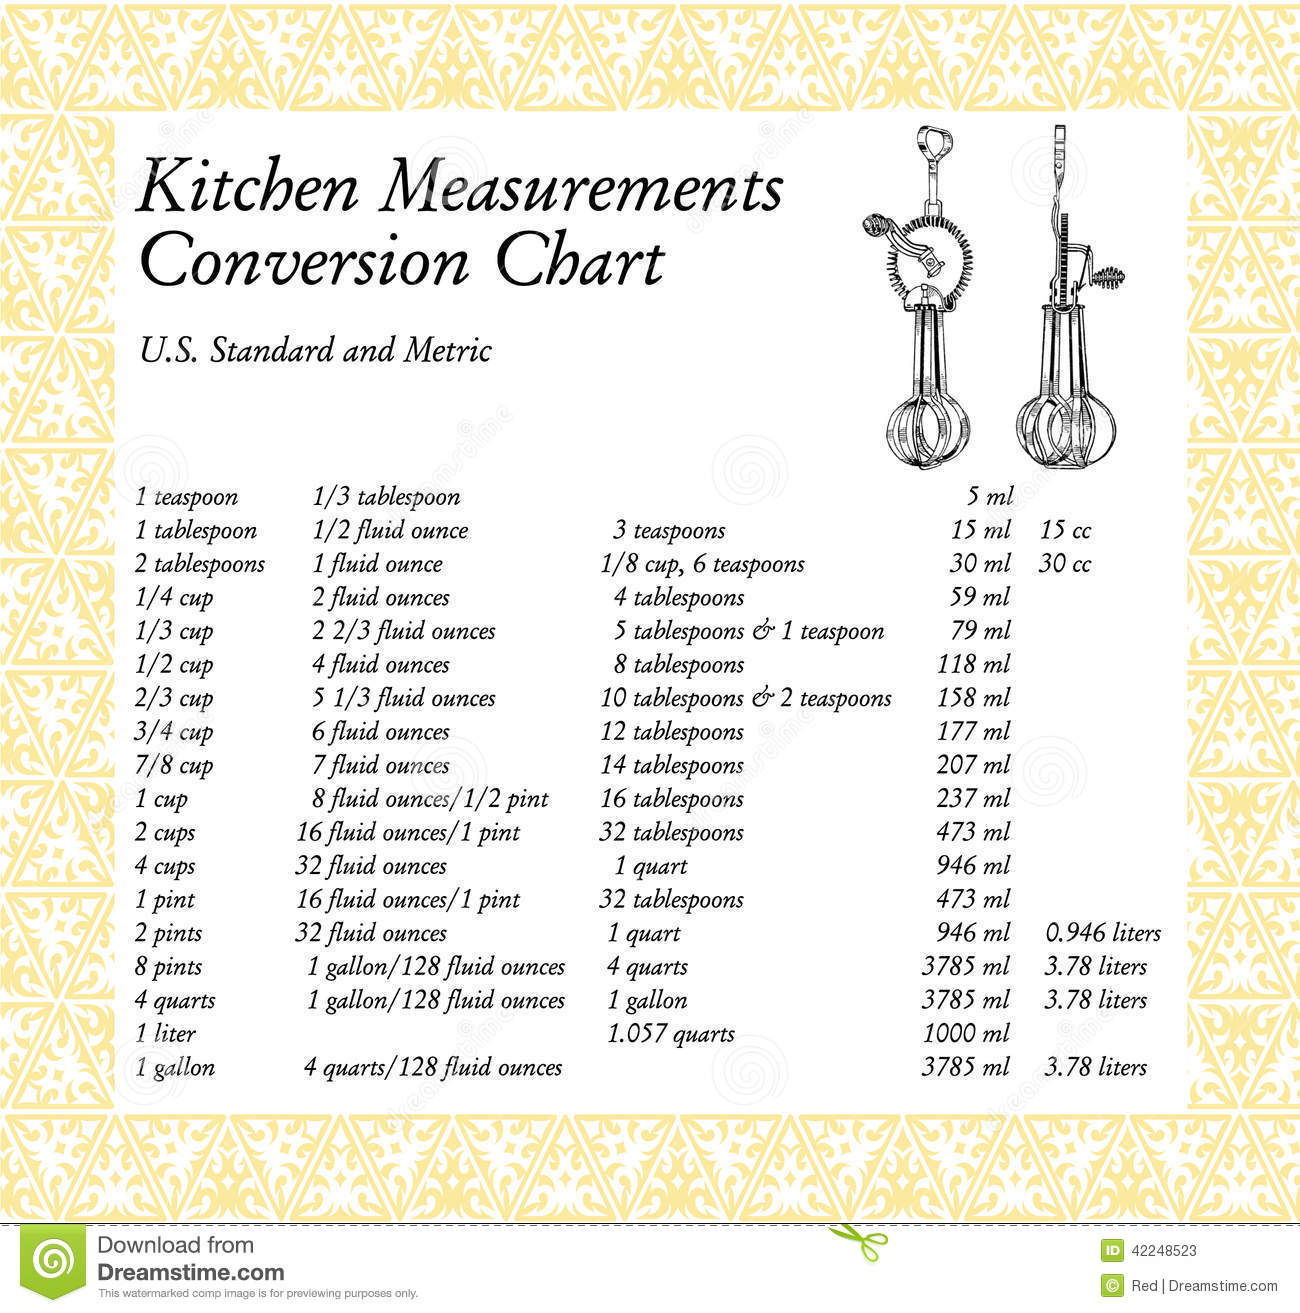 Cooking conversion charts gallery free any chart examples cooking conversion chart template jeppefm cooking conversion chart template nvjuhfo gallery geenschuldenfo Images